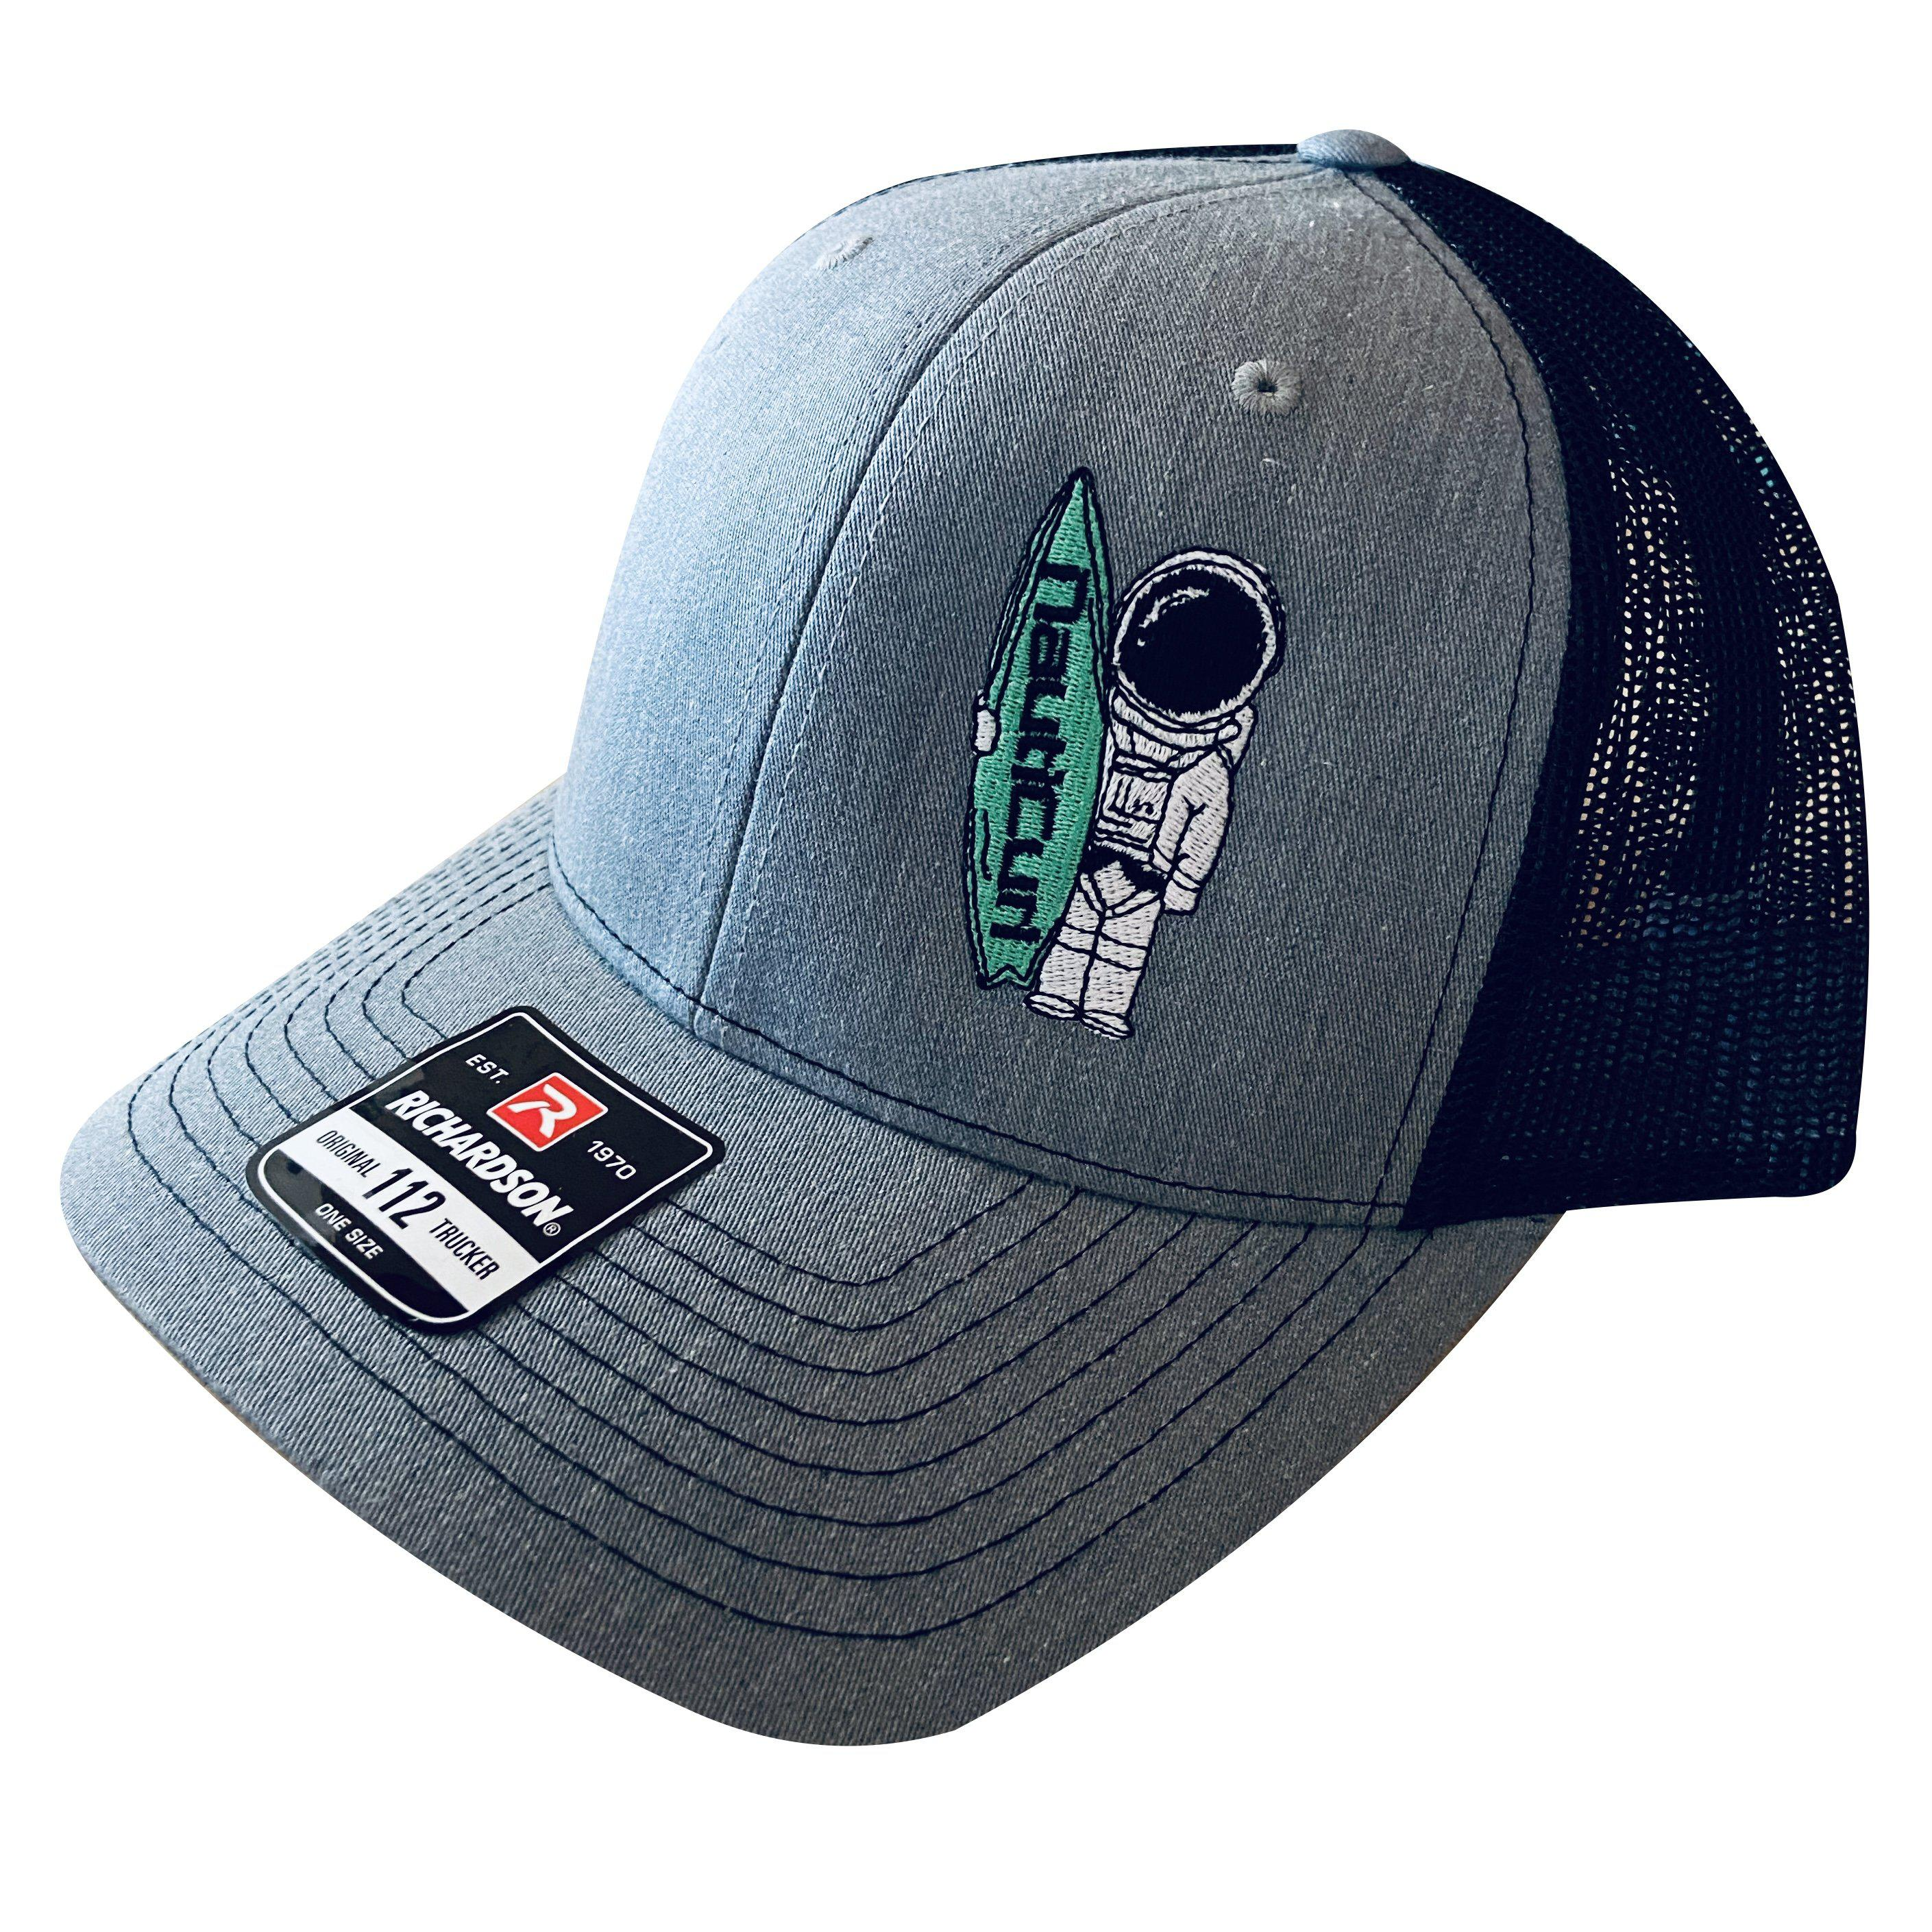 Astroknot NautiCurl Surf Boat Snap Back Mesh Hat - Gray and Black Richardson